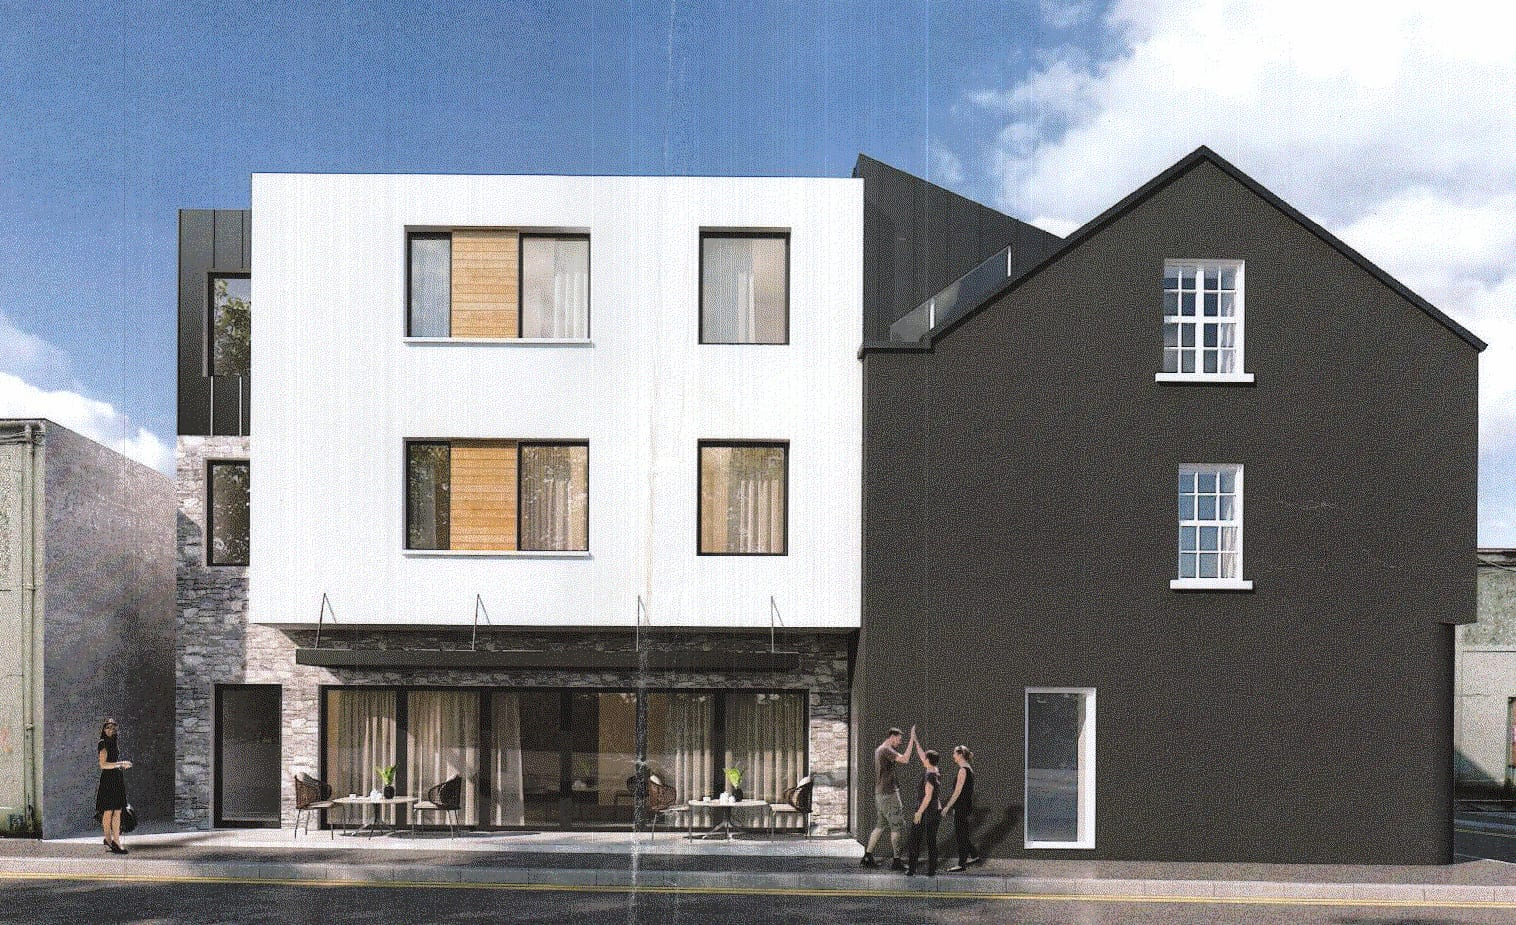 New city centre restaurant and guesthouse in the works